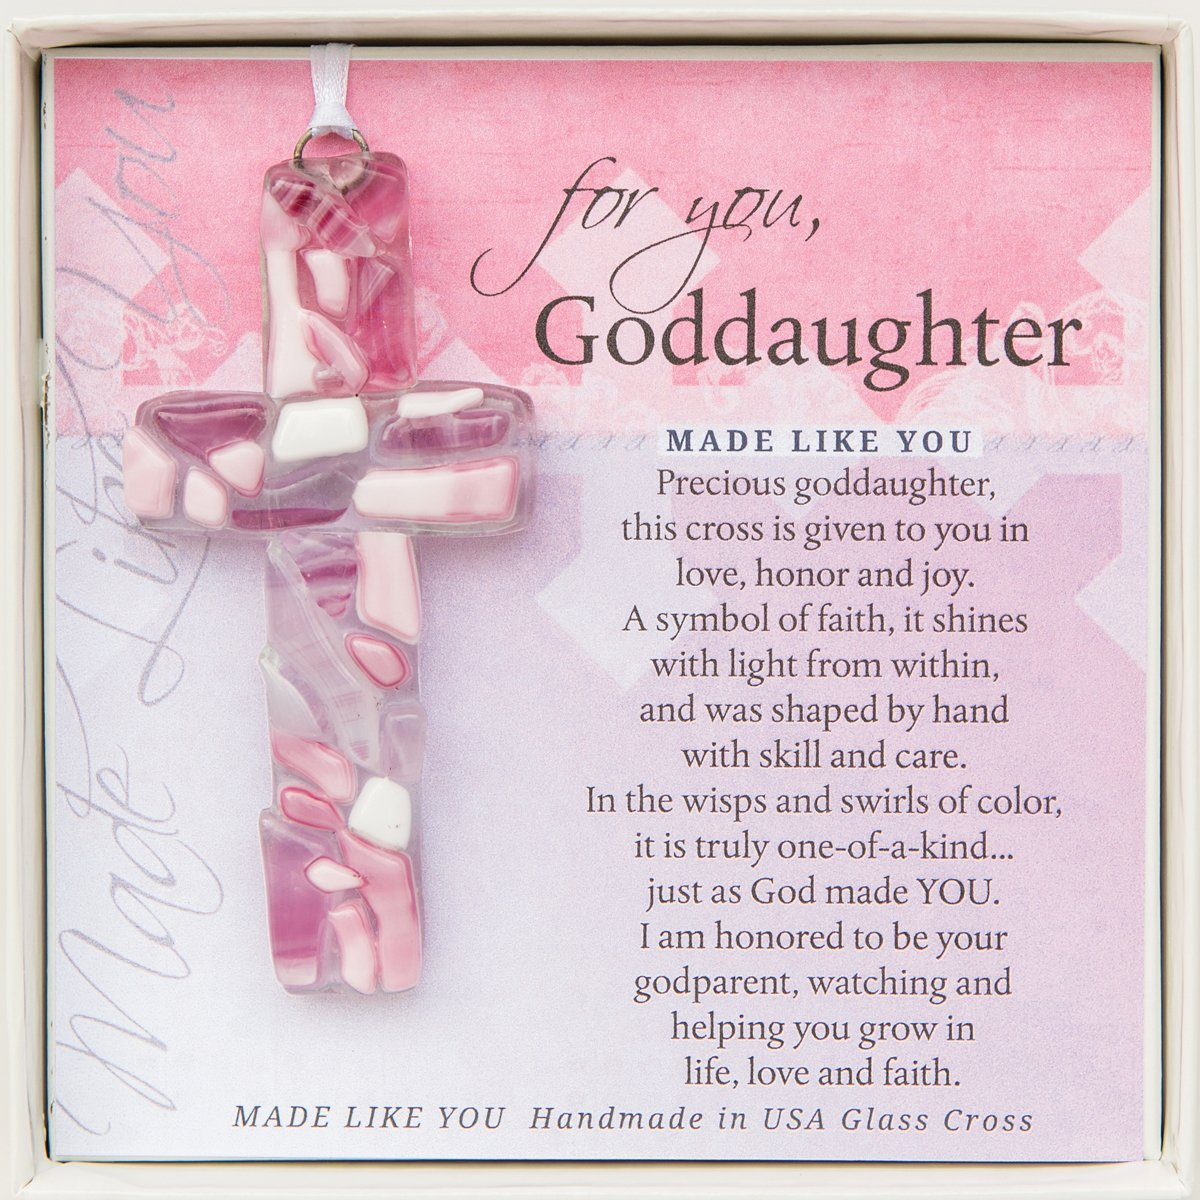 Amazon.com: For You, Goddaughter Pink Mosaic Handmade Glass Cross ...